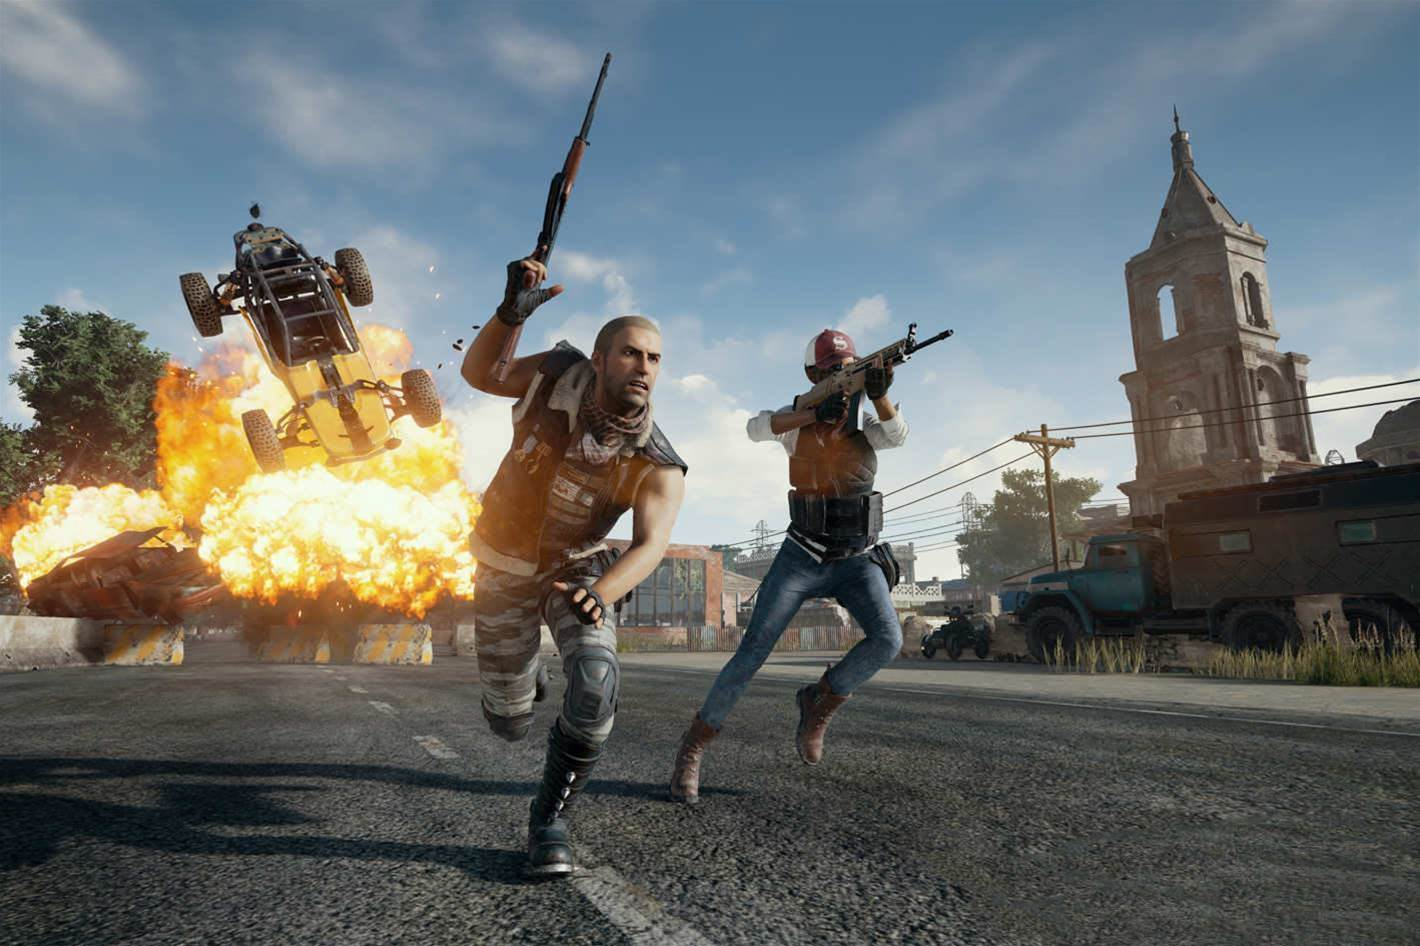 Dell responds to PUBG cheating claims